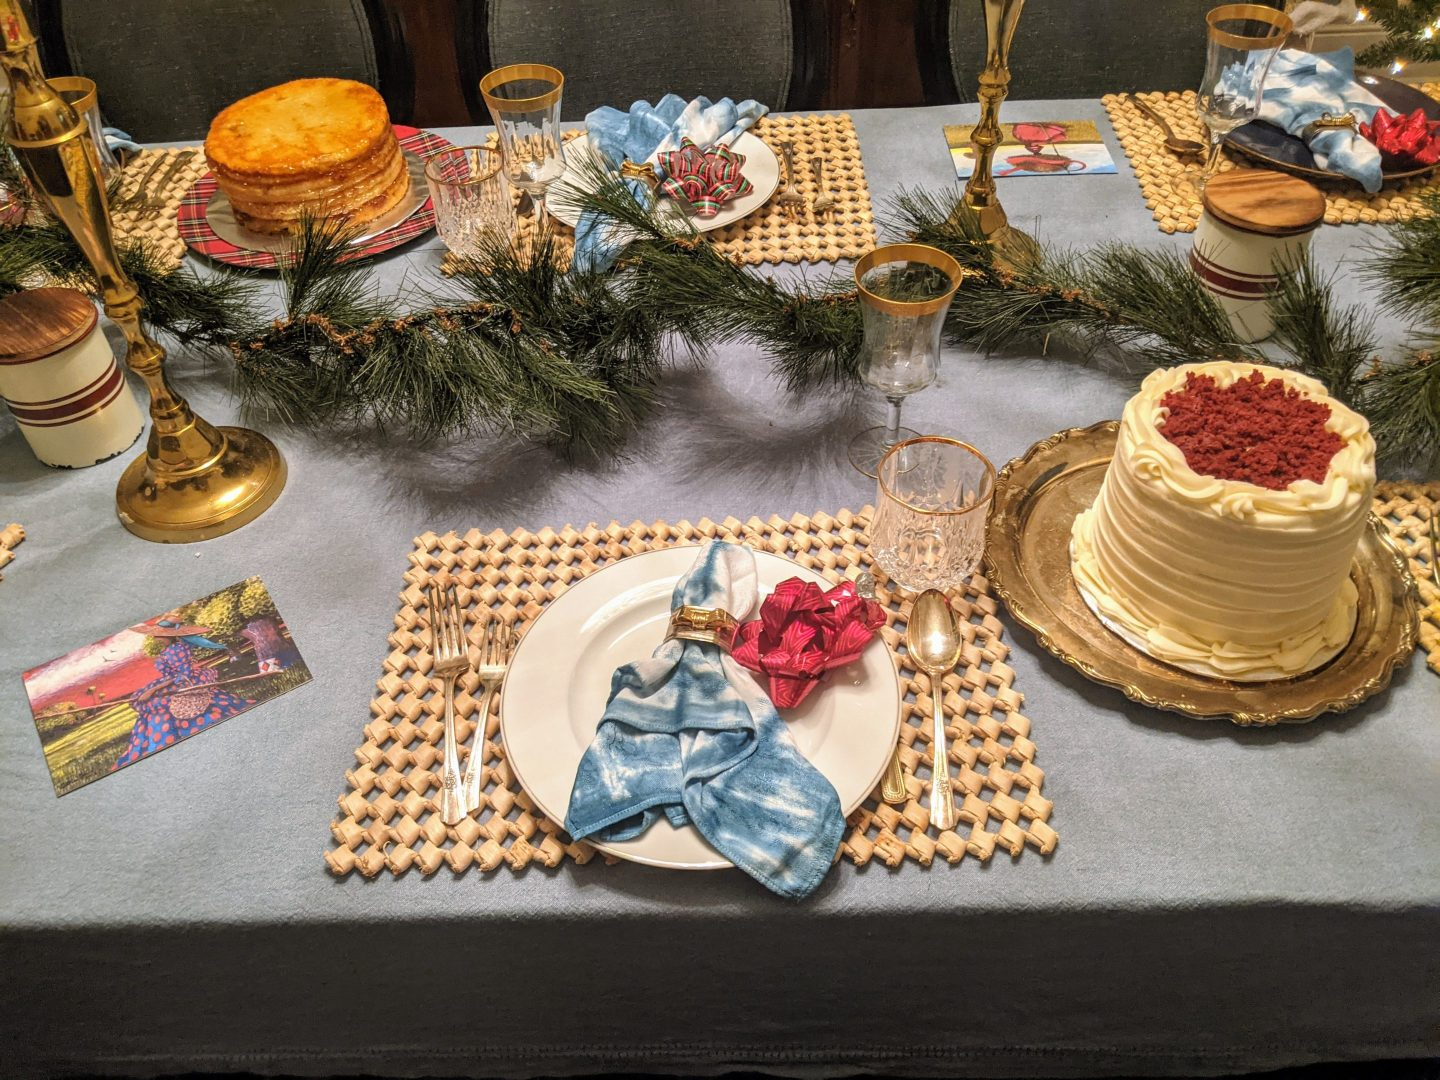 Heritage Inspiration: Holiday Cakes and Holiday Decor